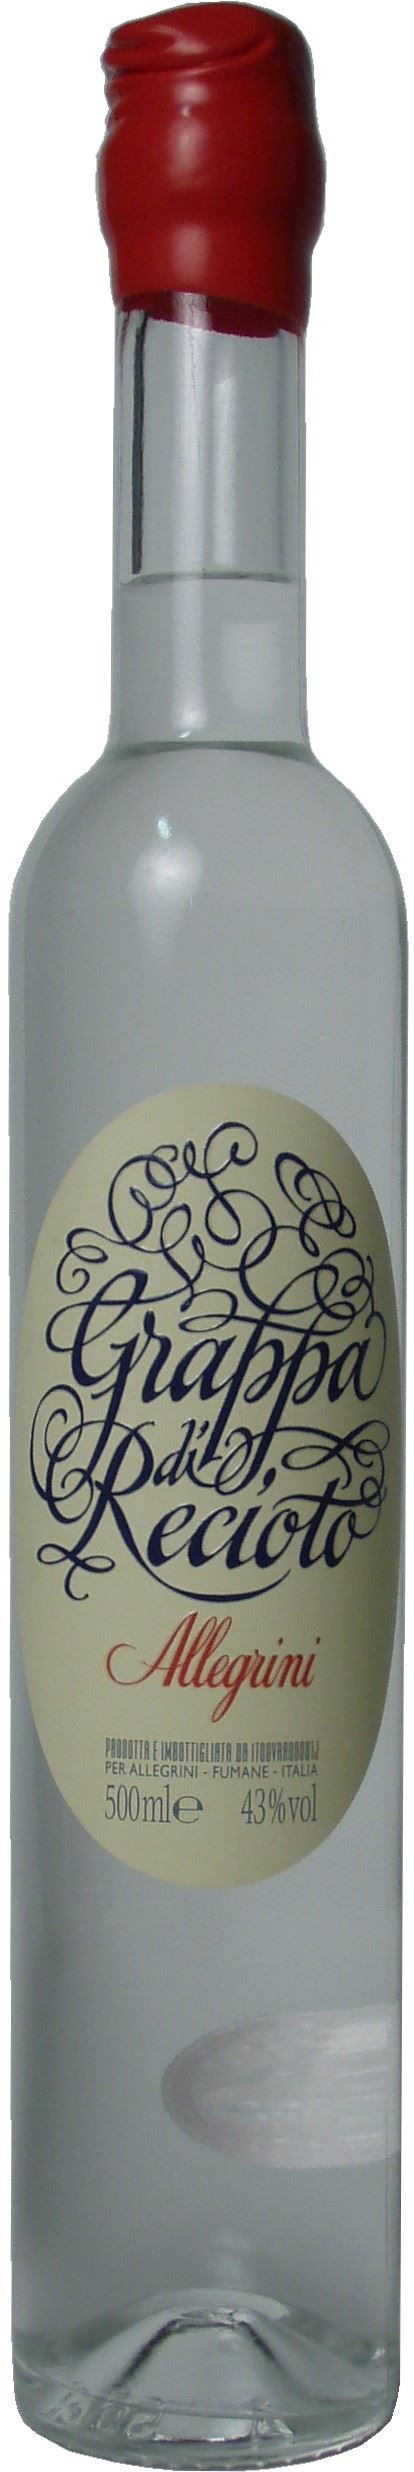 Grappa di Recioto Allegrini 50cl